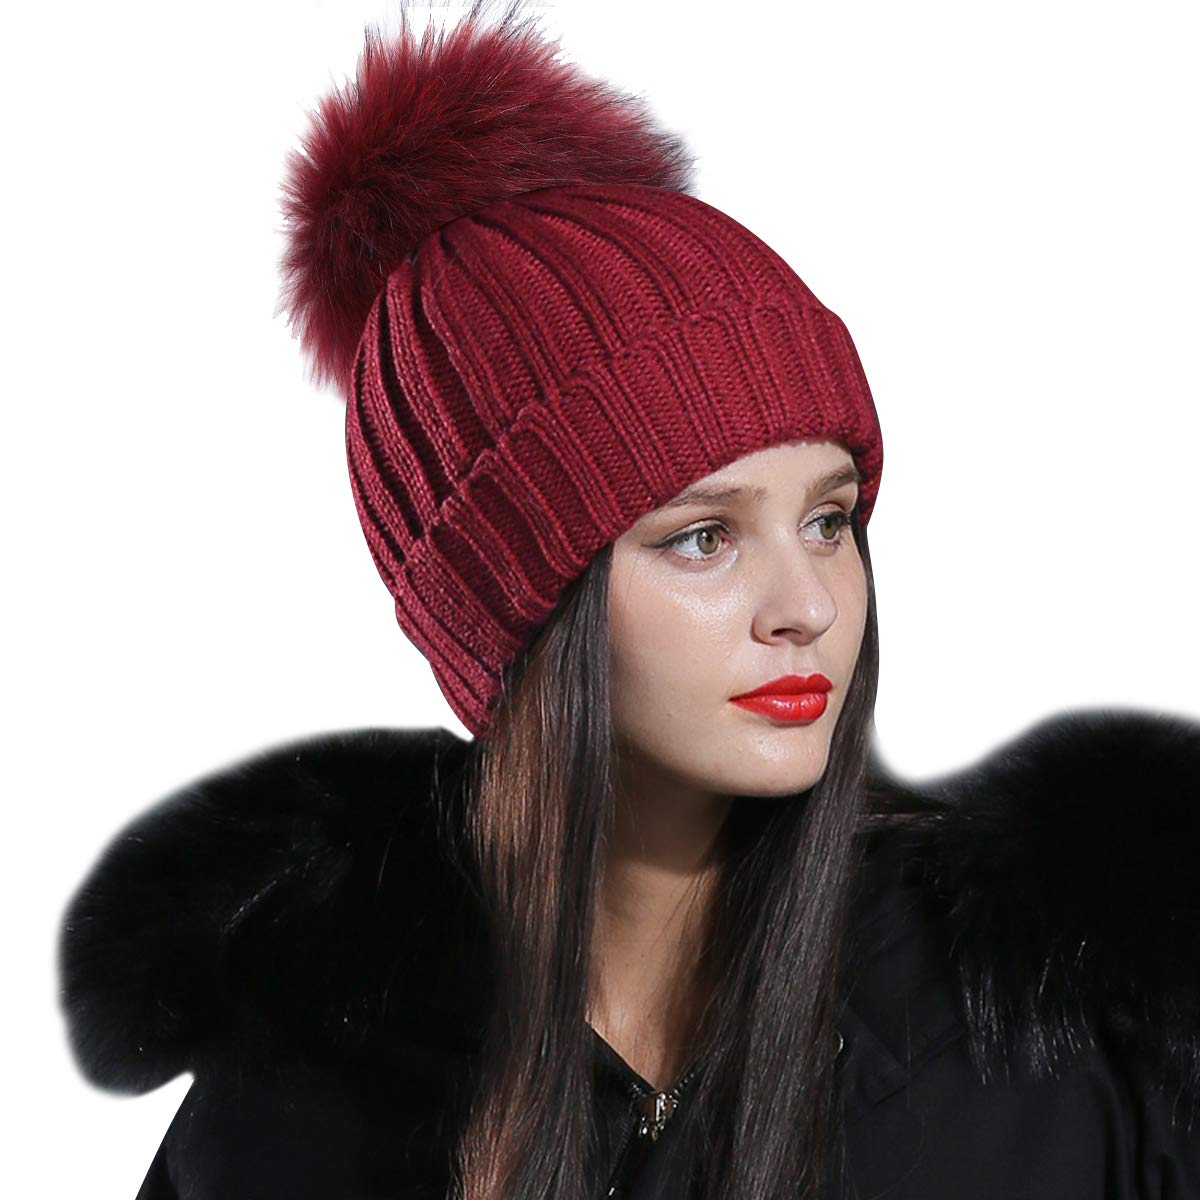 1f3a810dd4a537 CACUSS Women's Winter Soft Fur Pom Pom Beanie Hat Warm Cable Knitted Thick  Ski Caps Skull Cap (Wine red)